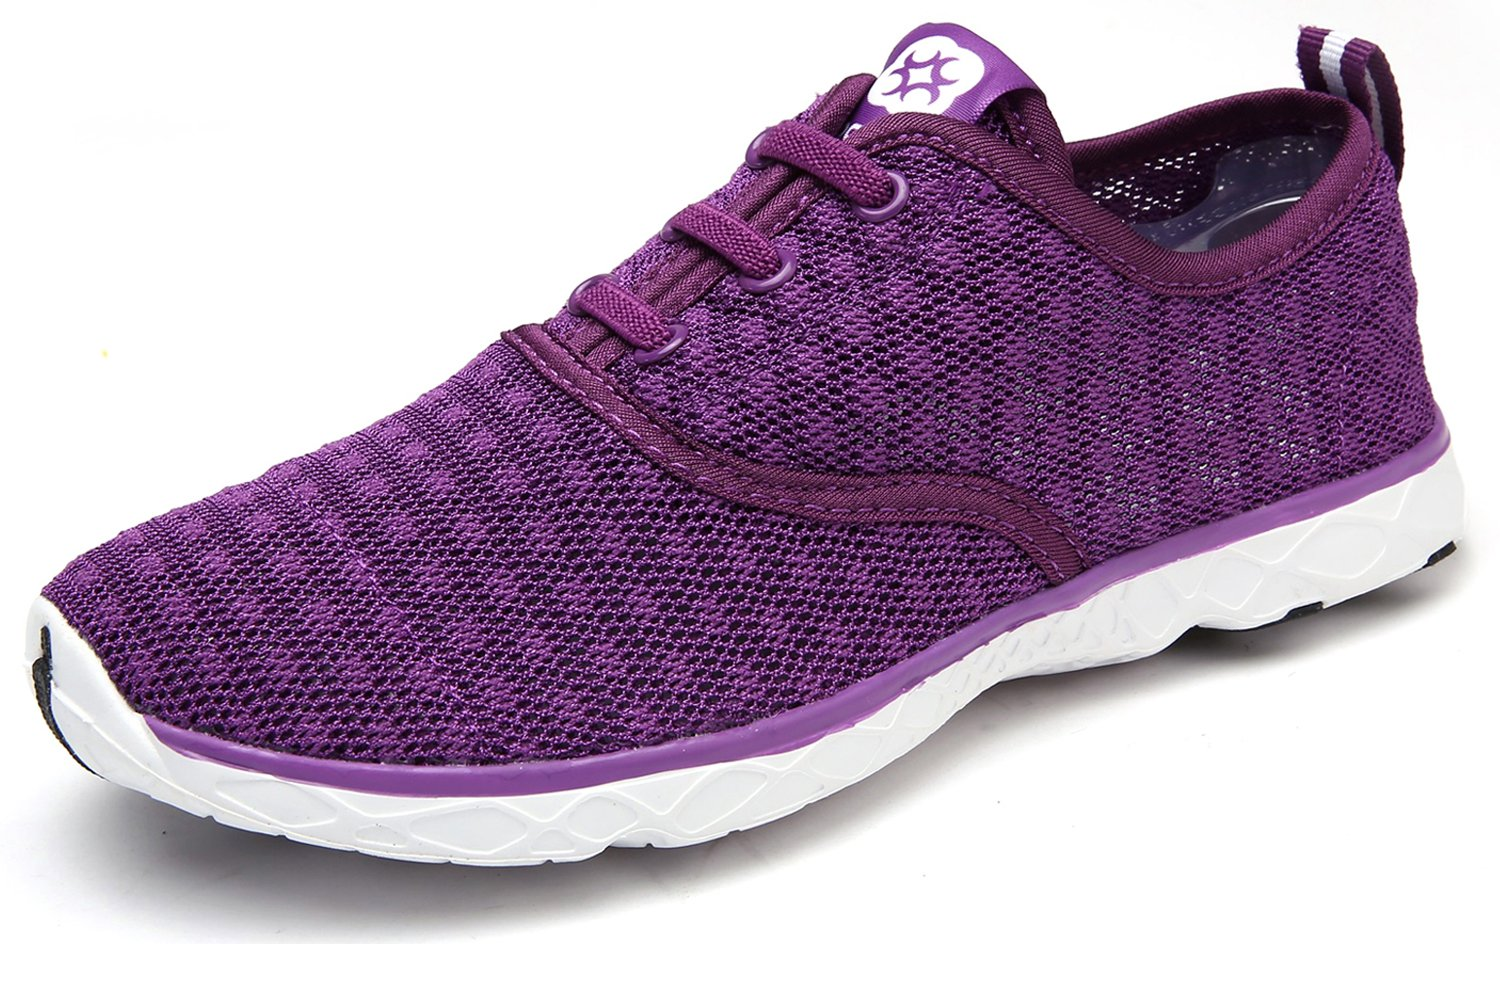 Dreamcity Women's water shoes athletic sport Lightweight walking shoes by Dreamcity